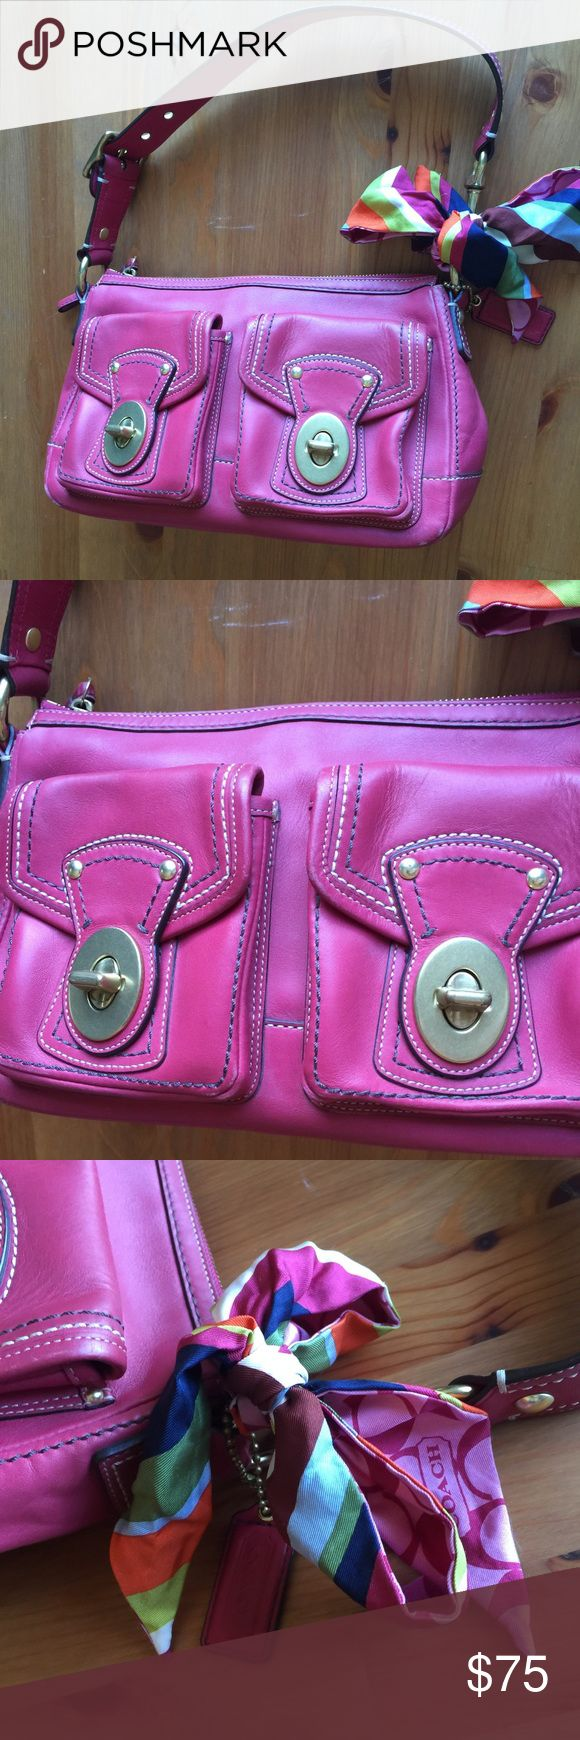 """Coach Legacy Mandy Magenta Leather Shoulder Bag Amazing Coach Legacy Rare Mandy bag. Double pocket front with gold buckles. Pretty magenta leather with signature canvas interior. Clean and pristine. Includes coach scarf as pictured. Excellent condition- this bag was well taken care of! 12""""Long 7.5"""" high 4"""" across bottom Coach Bags Shoulder Bags"""